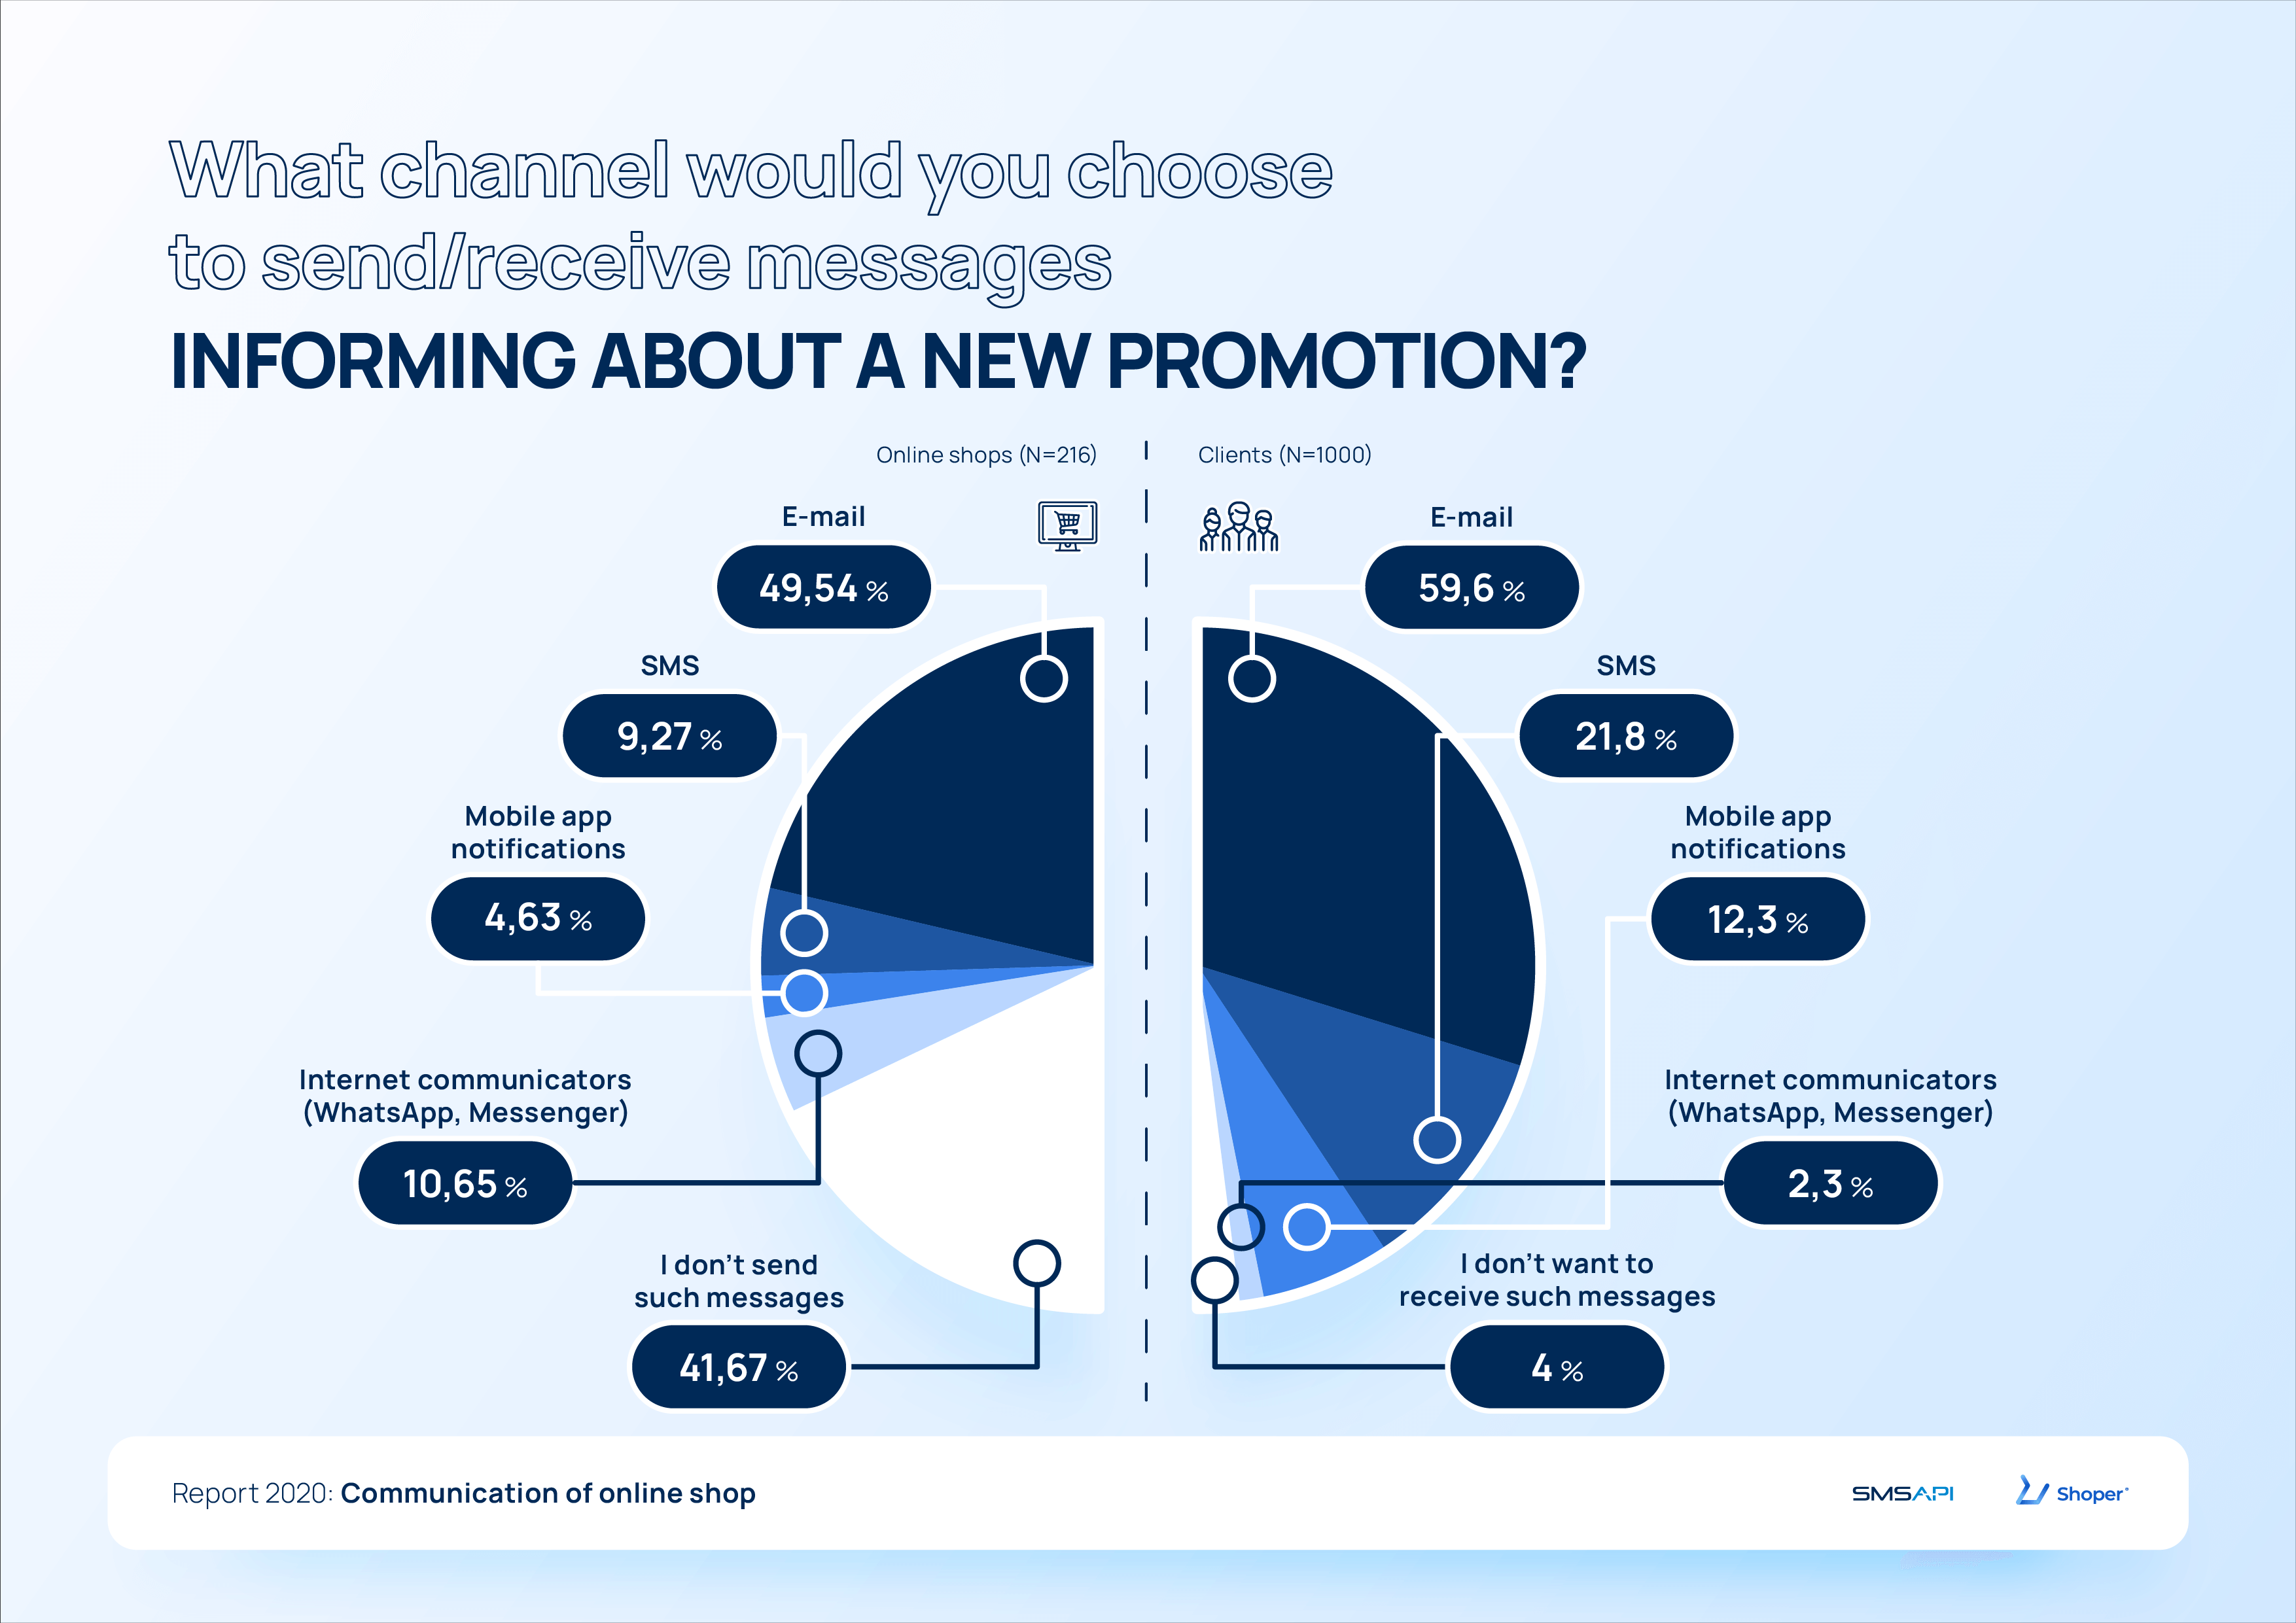 What channel would you choose to send or receive messages informing about a new promotion? 2020 e-commerce report